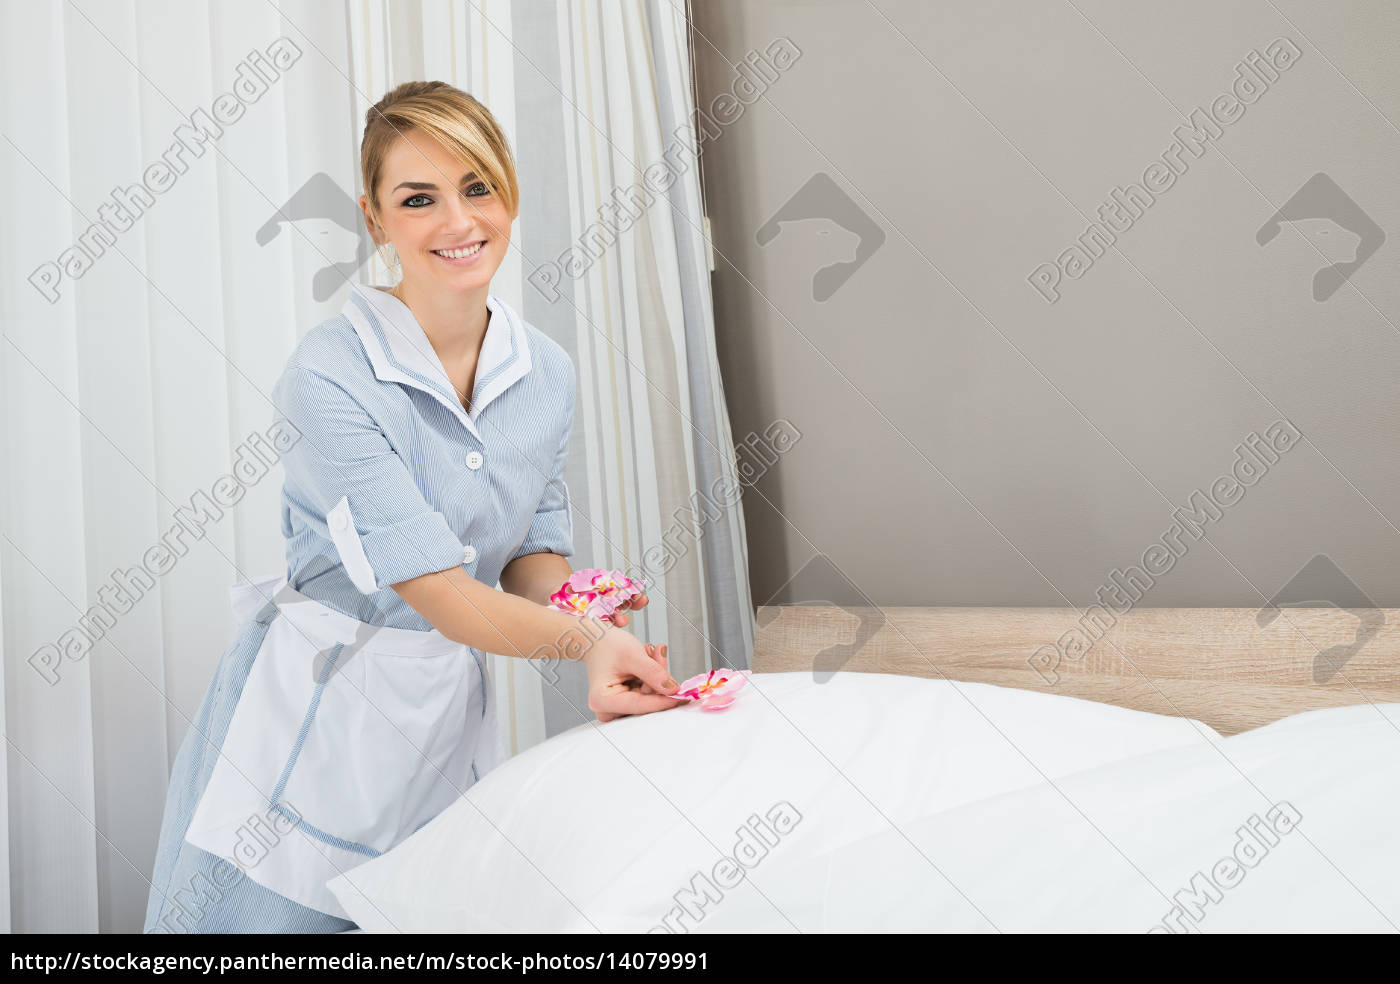 housekeeper, decorating, bed, with, petals - 14079991